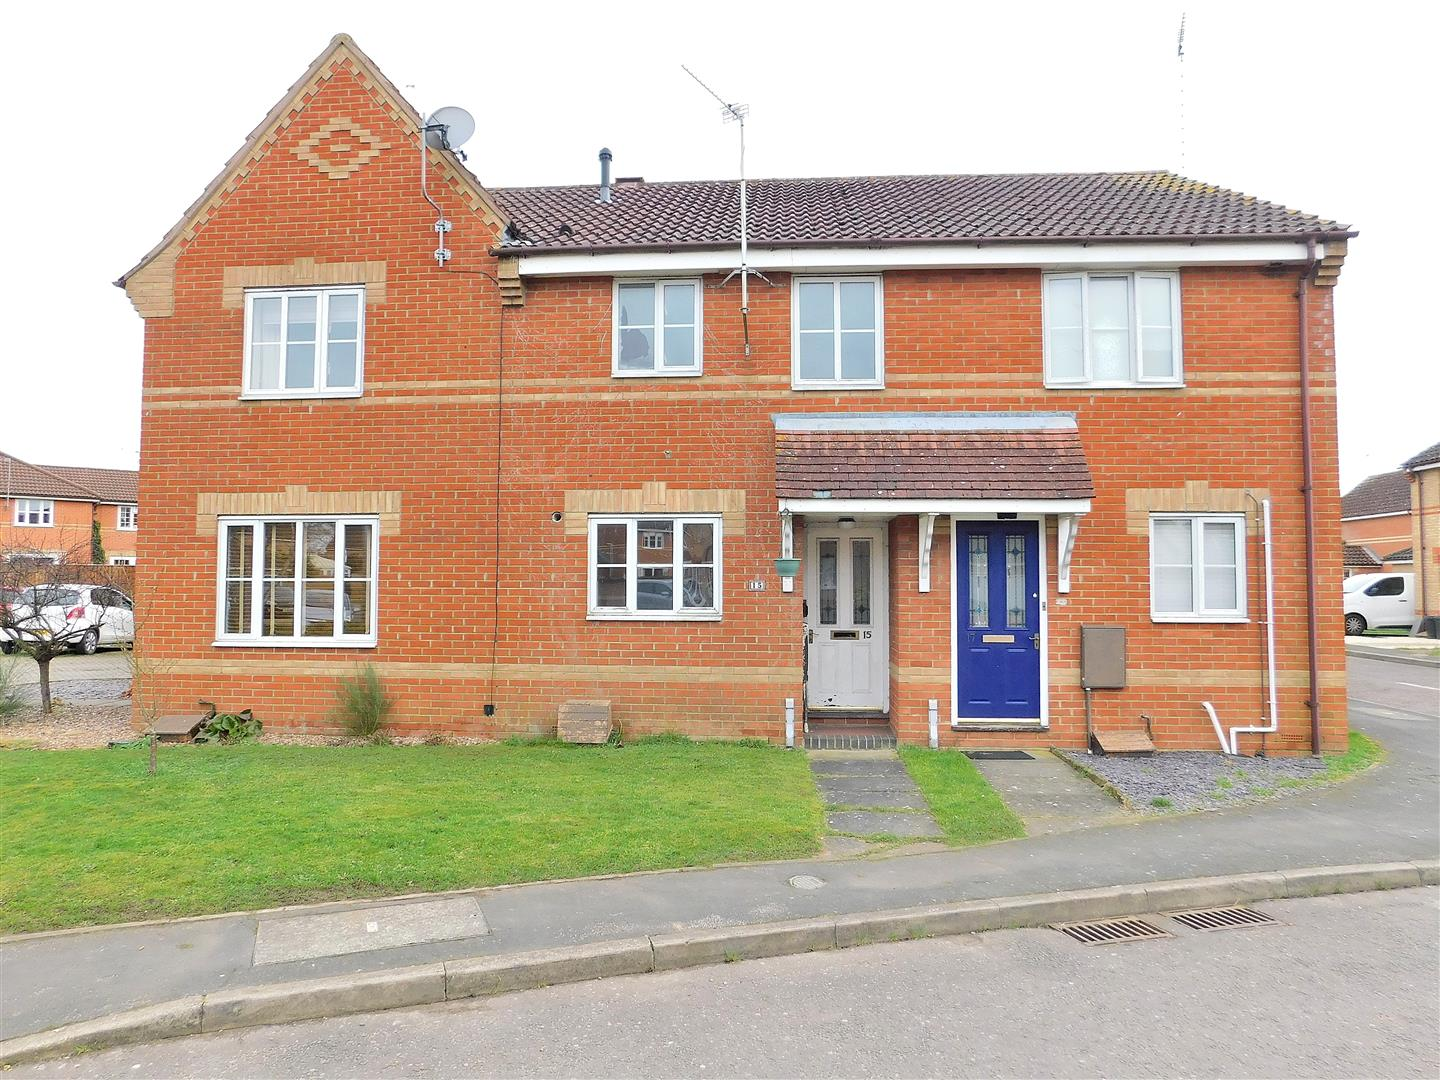 2 bed terraced house for sale in King's Lynn, PE30 4YY, PE30